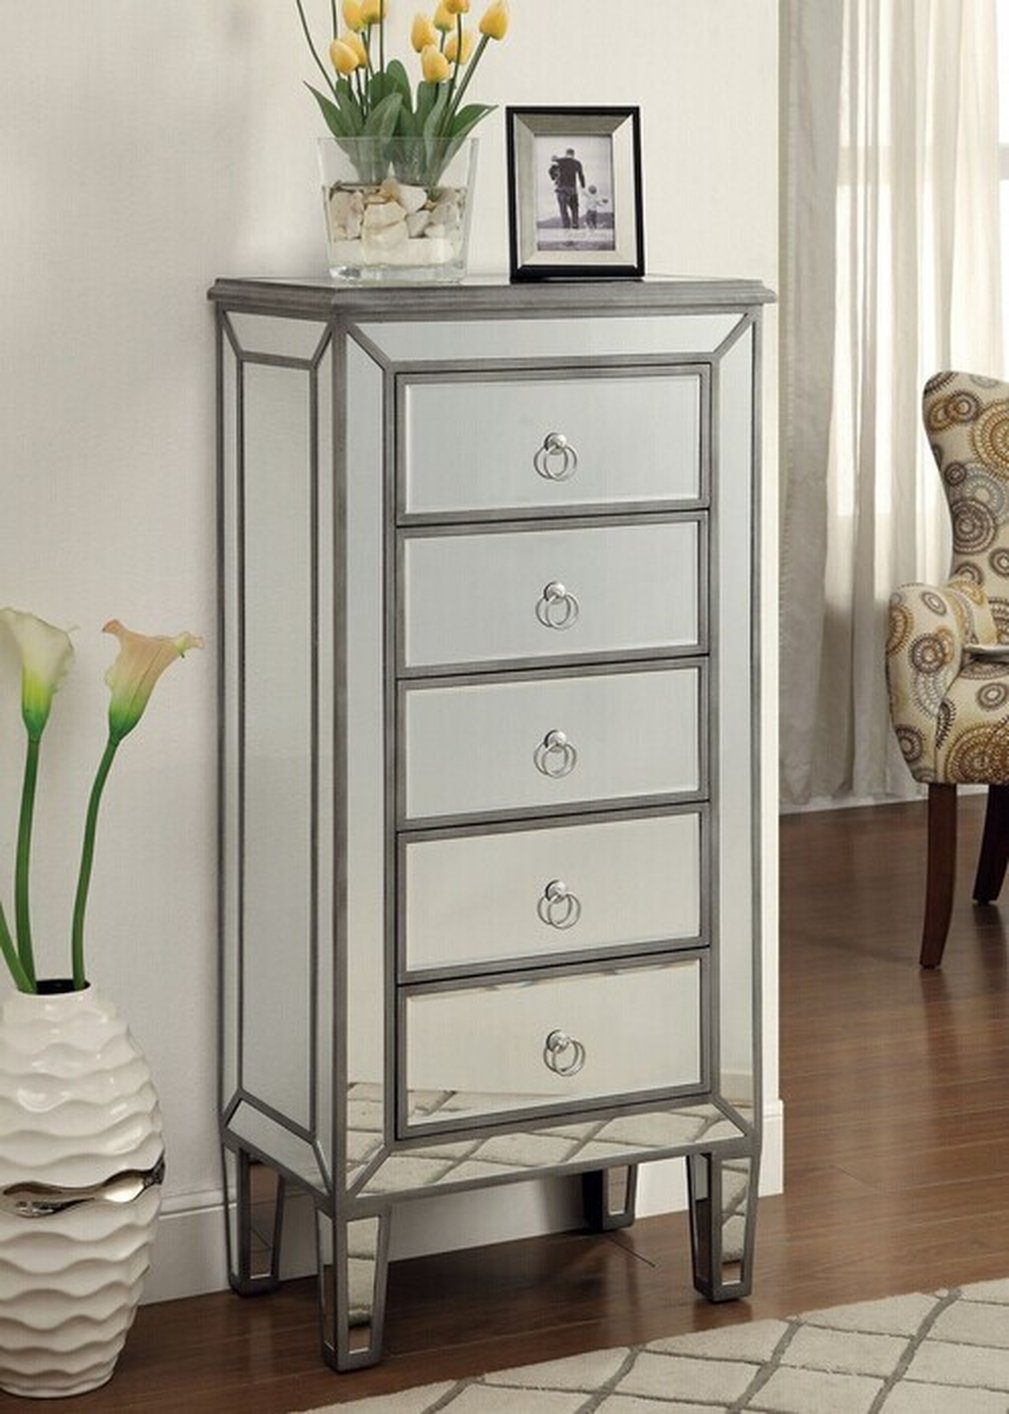 Coaster 950046 Silver Glass Jewelry Armoire - Steal-A-Sofa ...